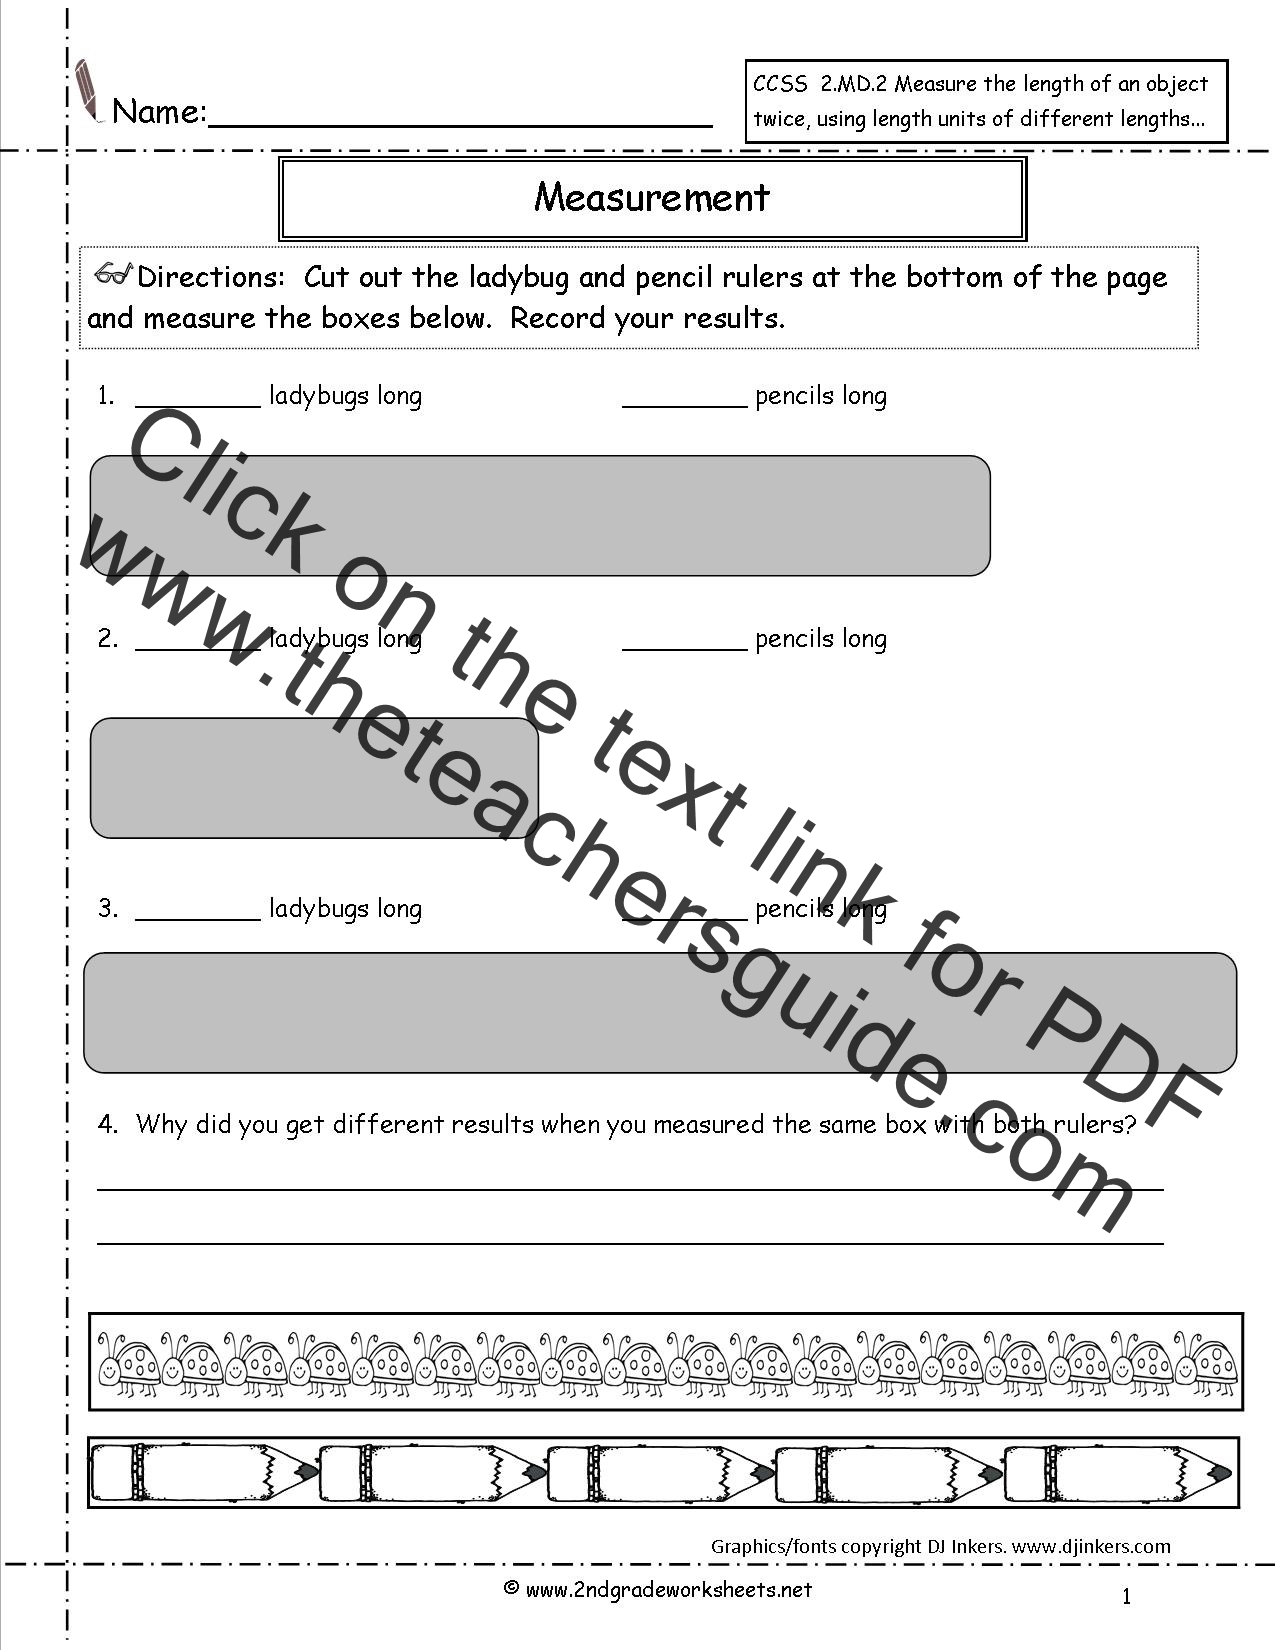 Uncategorized Common Core Math Worksheets Grade 5 2nd grade math common core state standards worksheets ccss 2 md worksheets